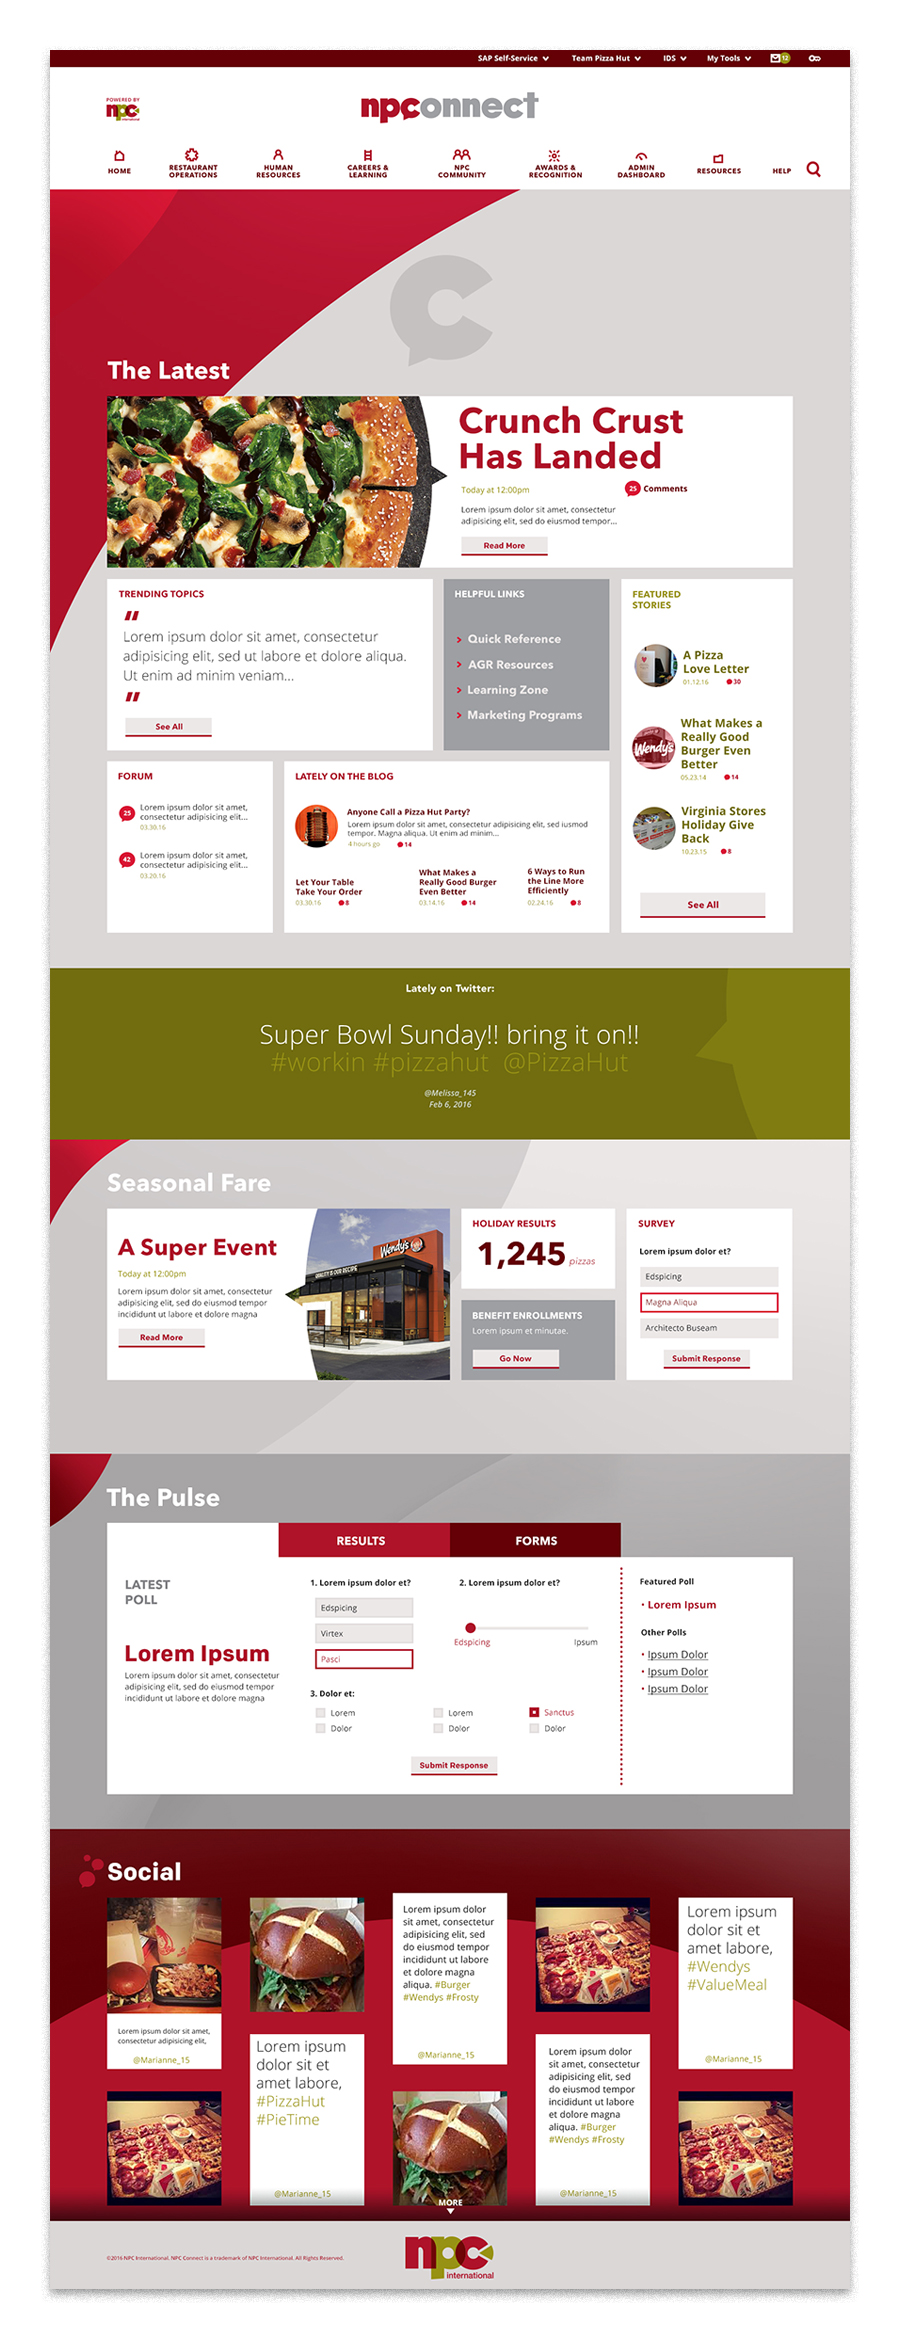 The homepage is an engaging dashboard to show all users current company information at a glance.